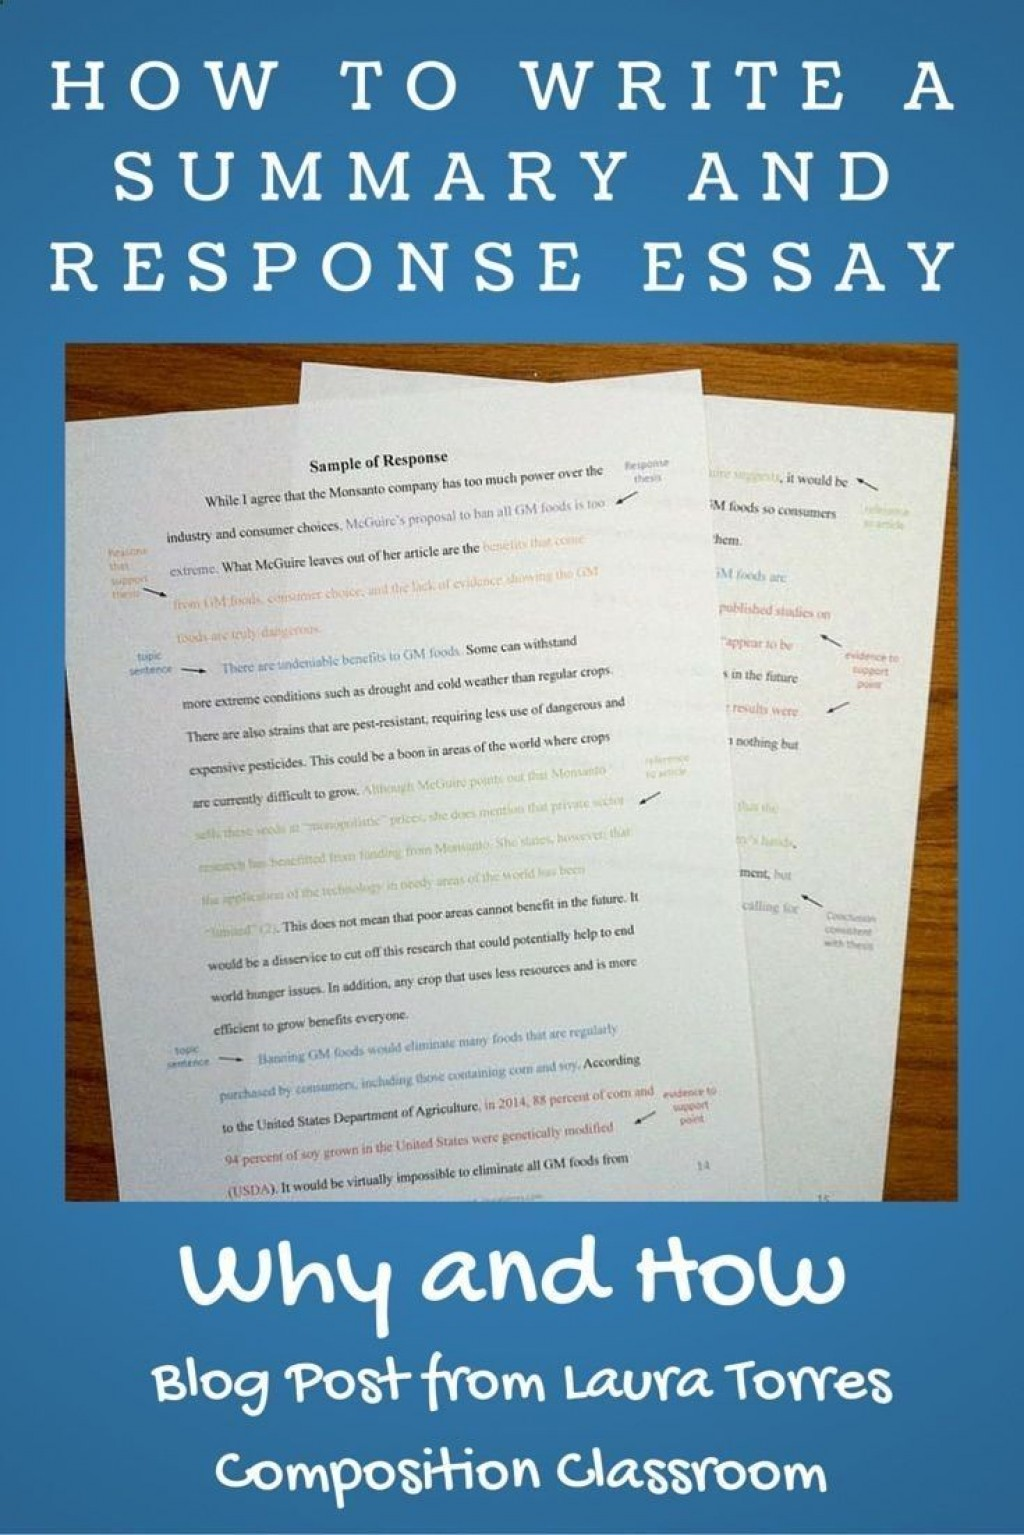 020 Essay Example Summary And Response Stupendous Thesis Conclusion Analysis Sample Large